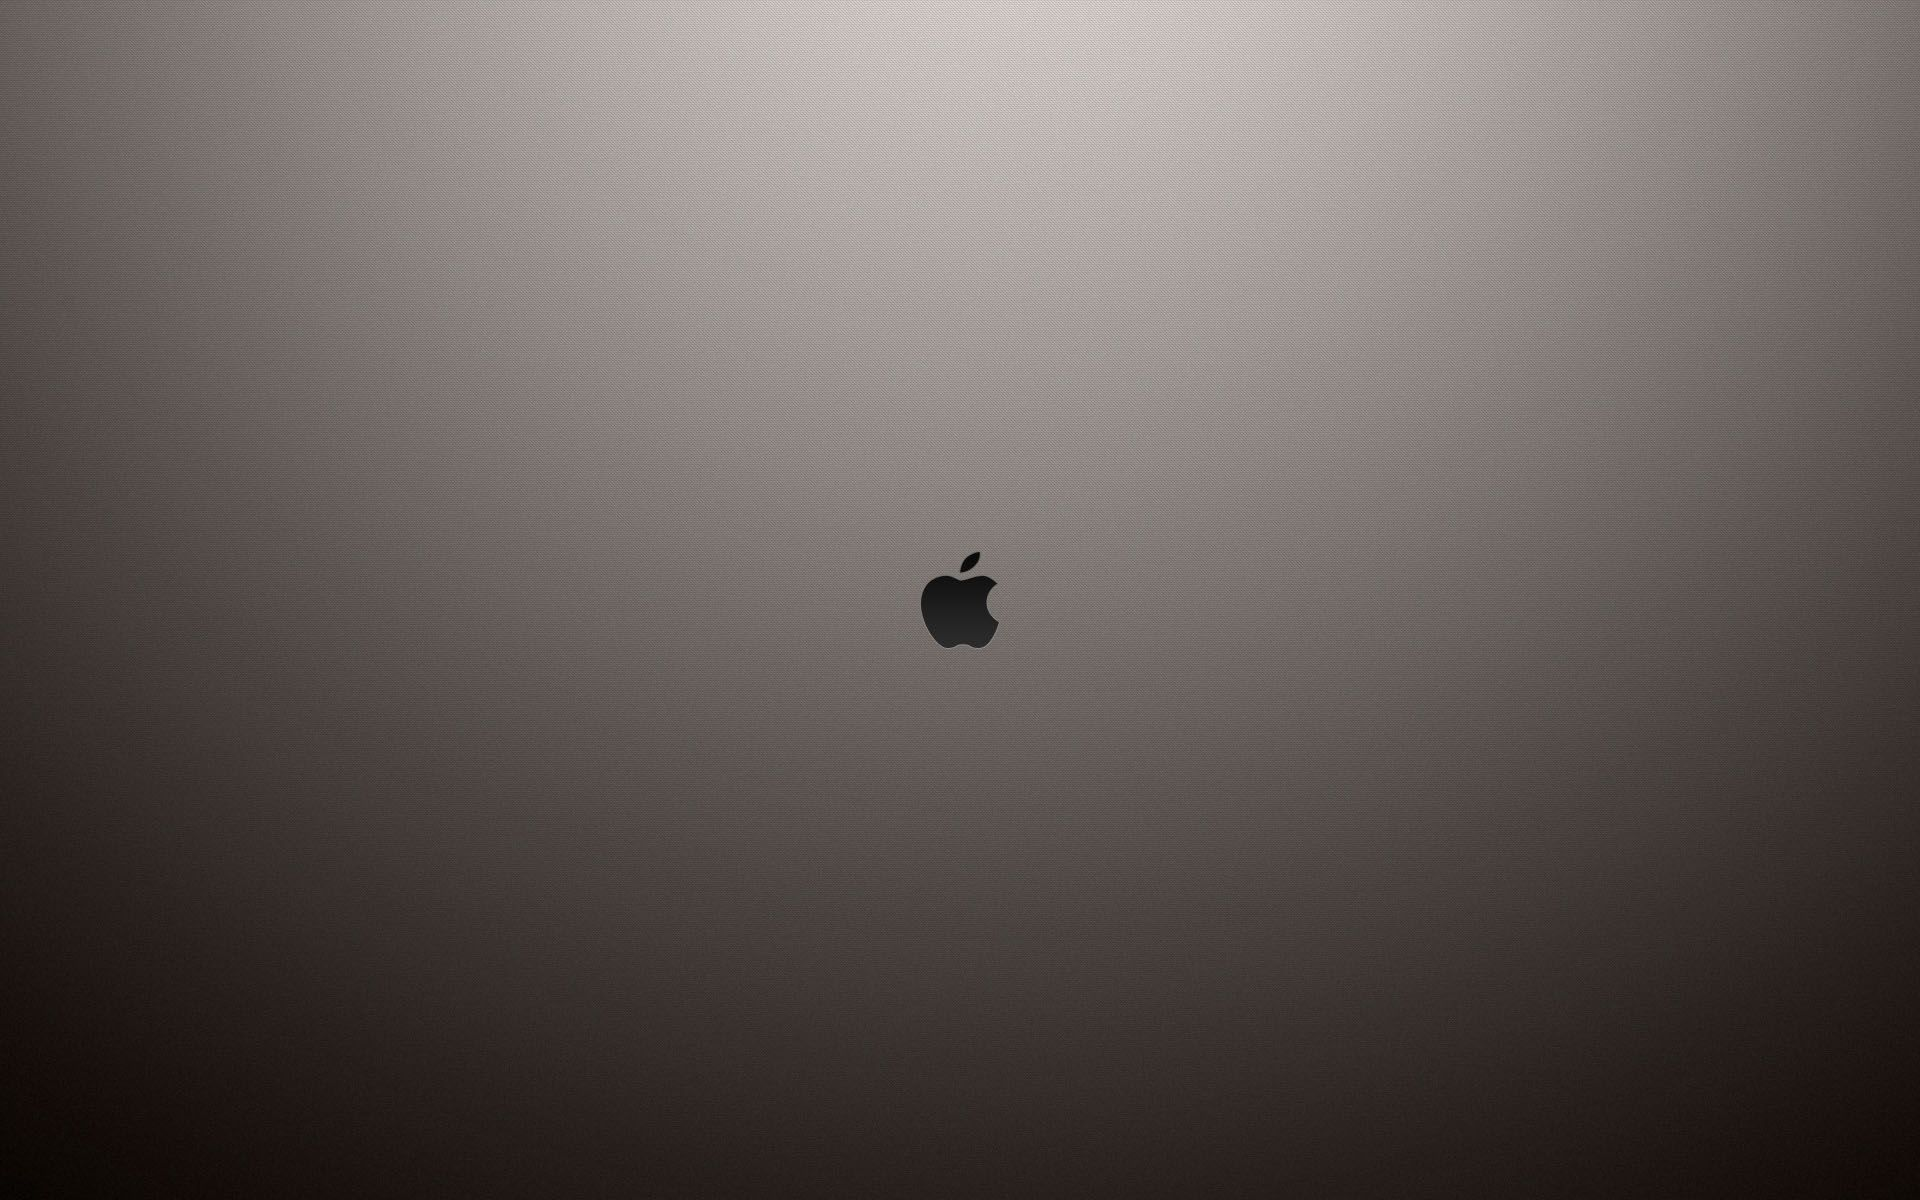 Apple HD Wallpapers Apple Logo Desktop Backgrounds Page 1920